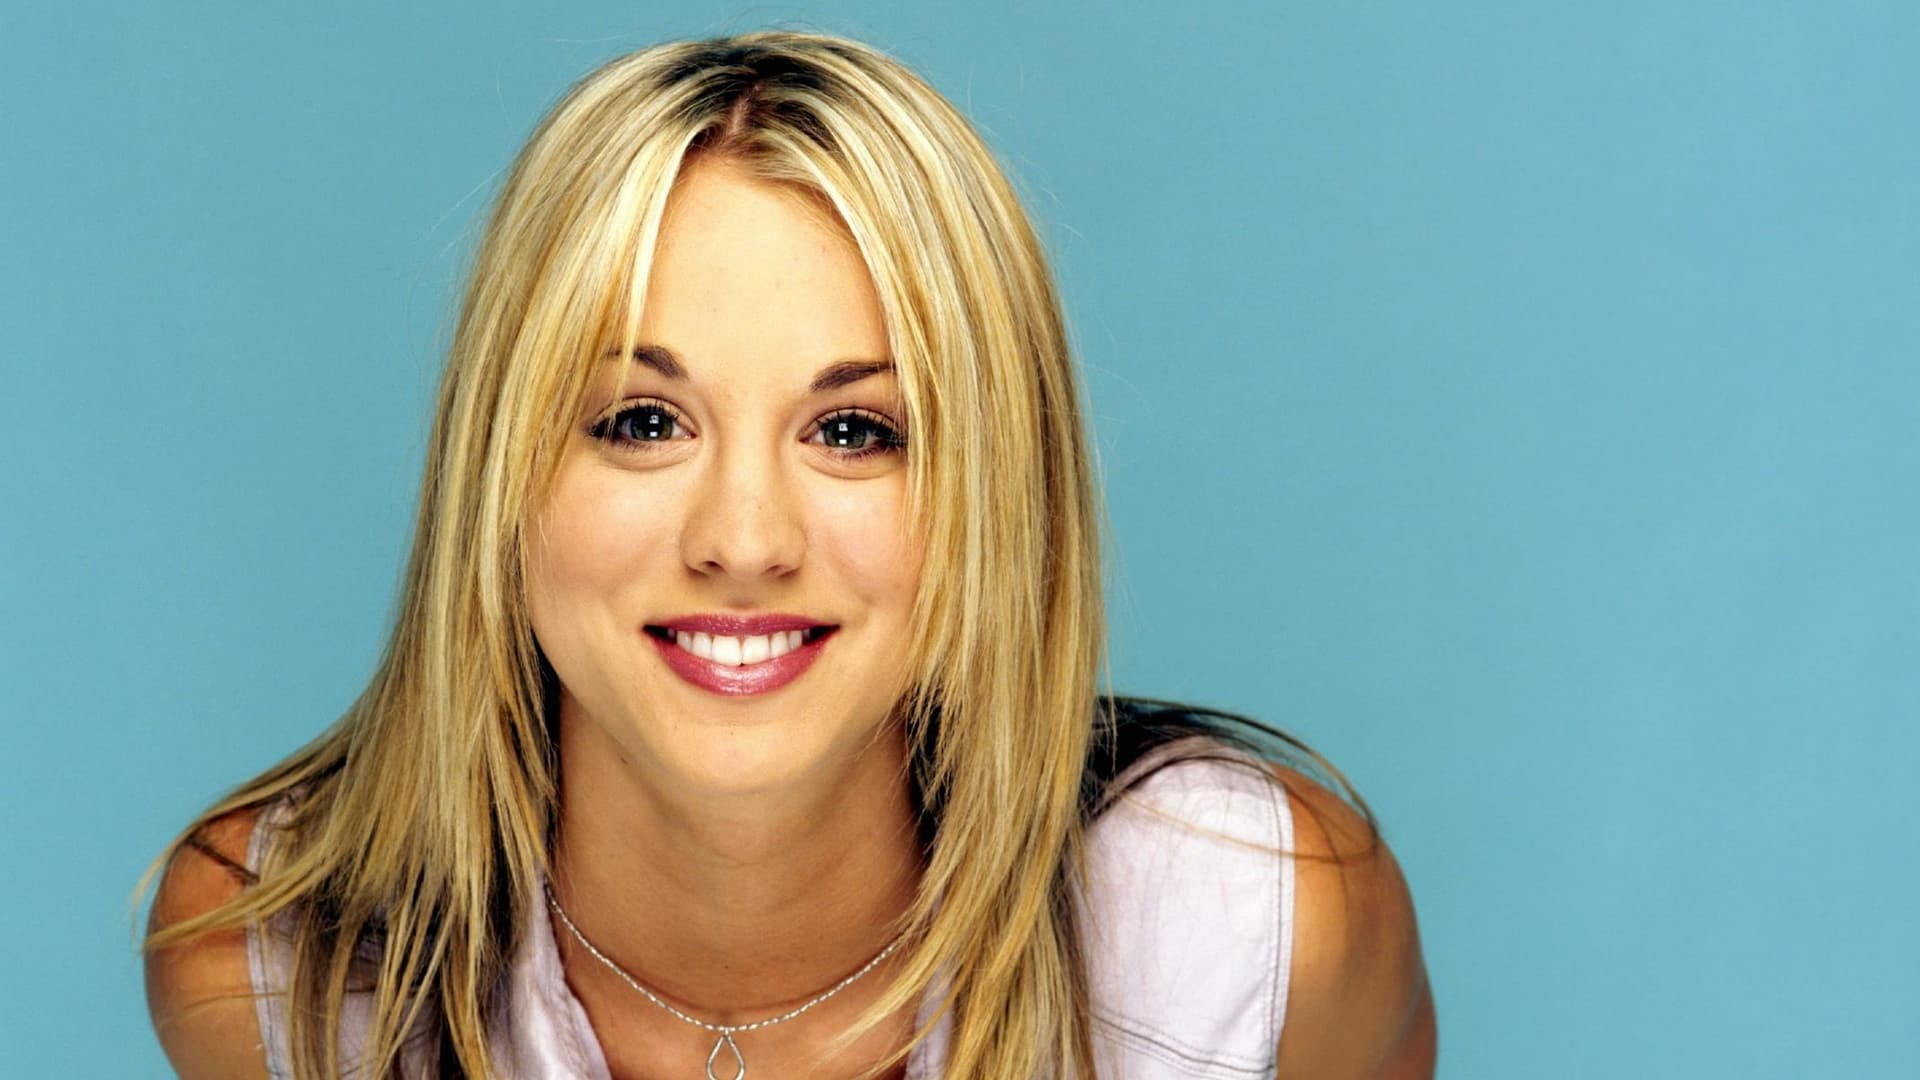 Hd Quality Wallpaper Download 20 Kaley Cuoco Wallpapers High Quality Download